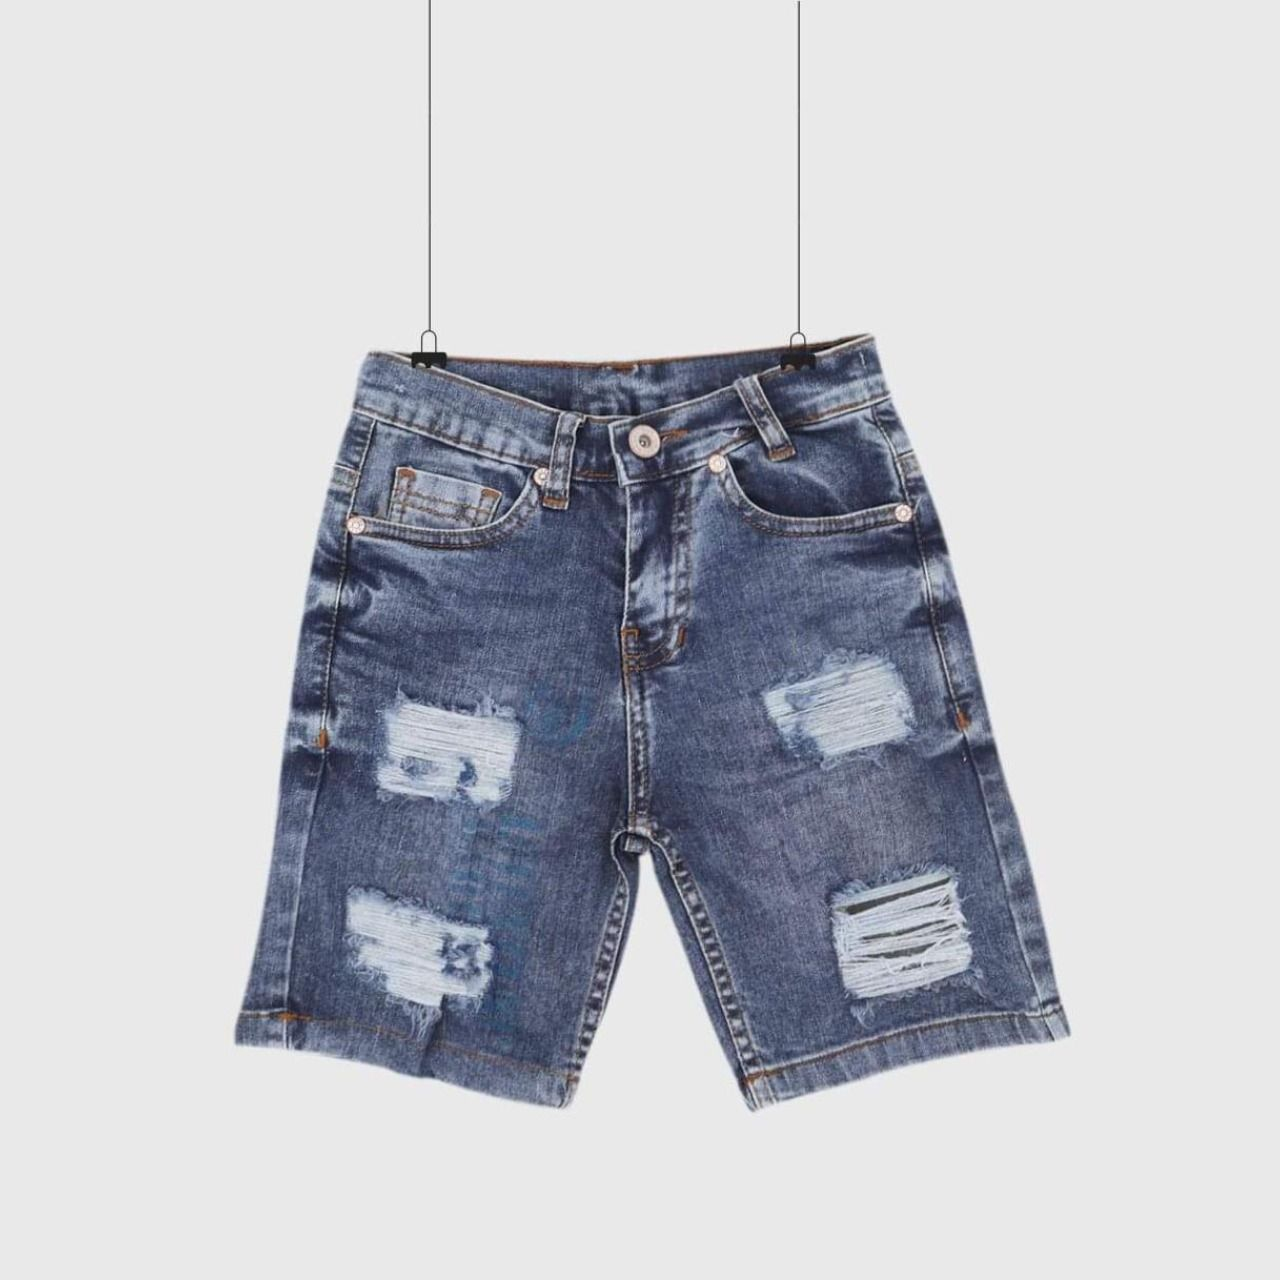 Pin On Jeans Section